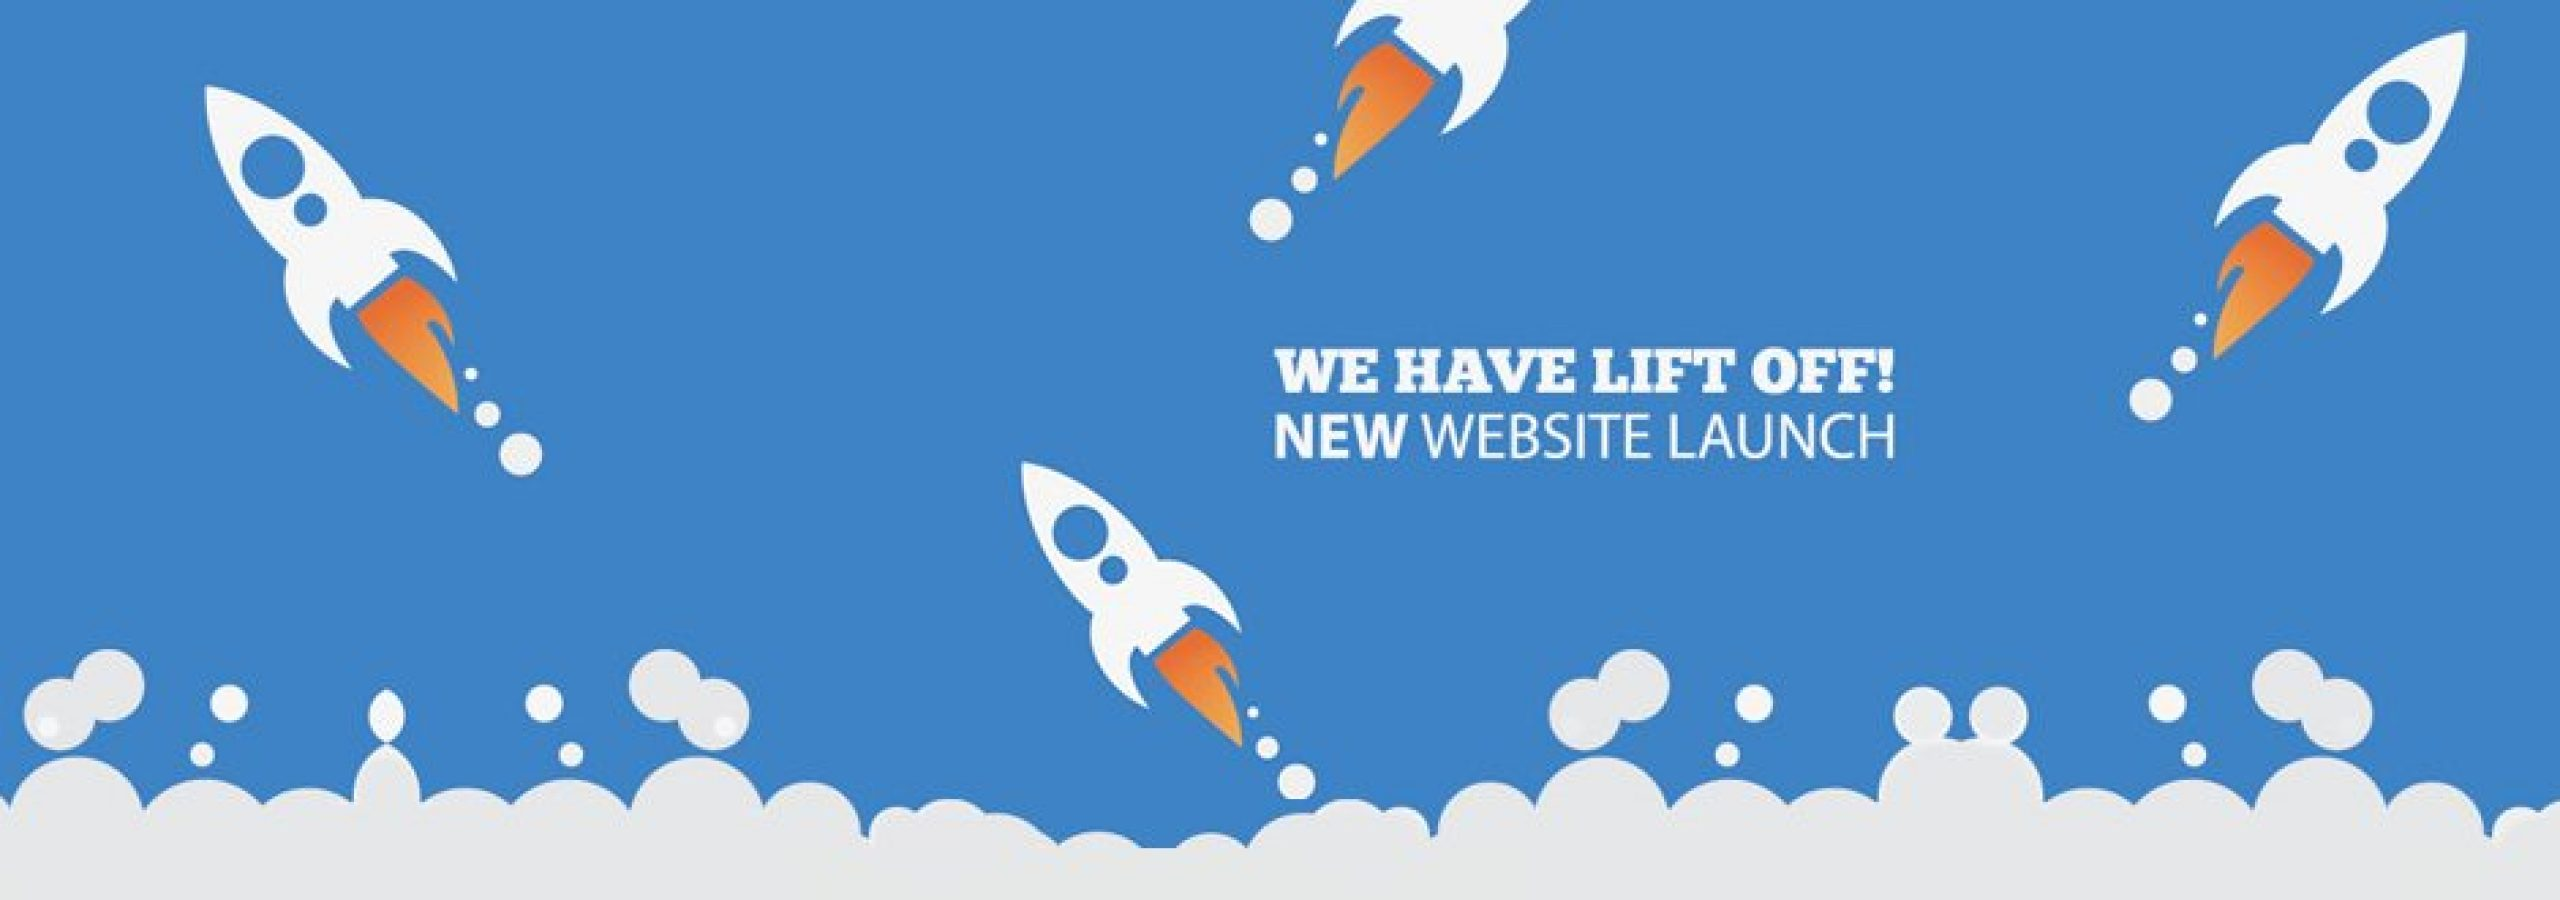 H&T Batteries | Welcome to our new website